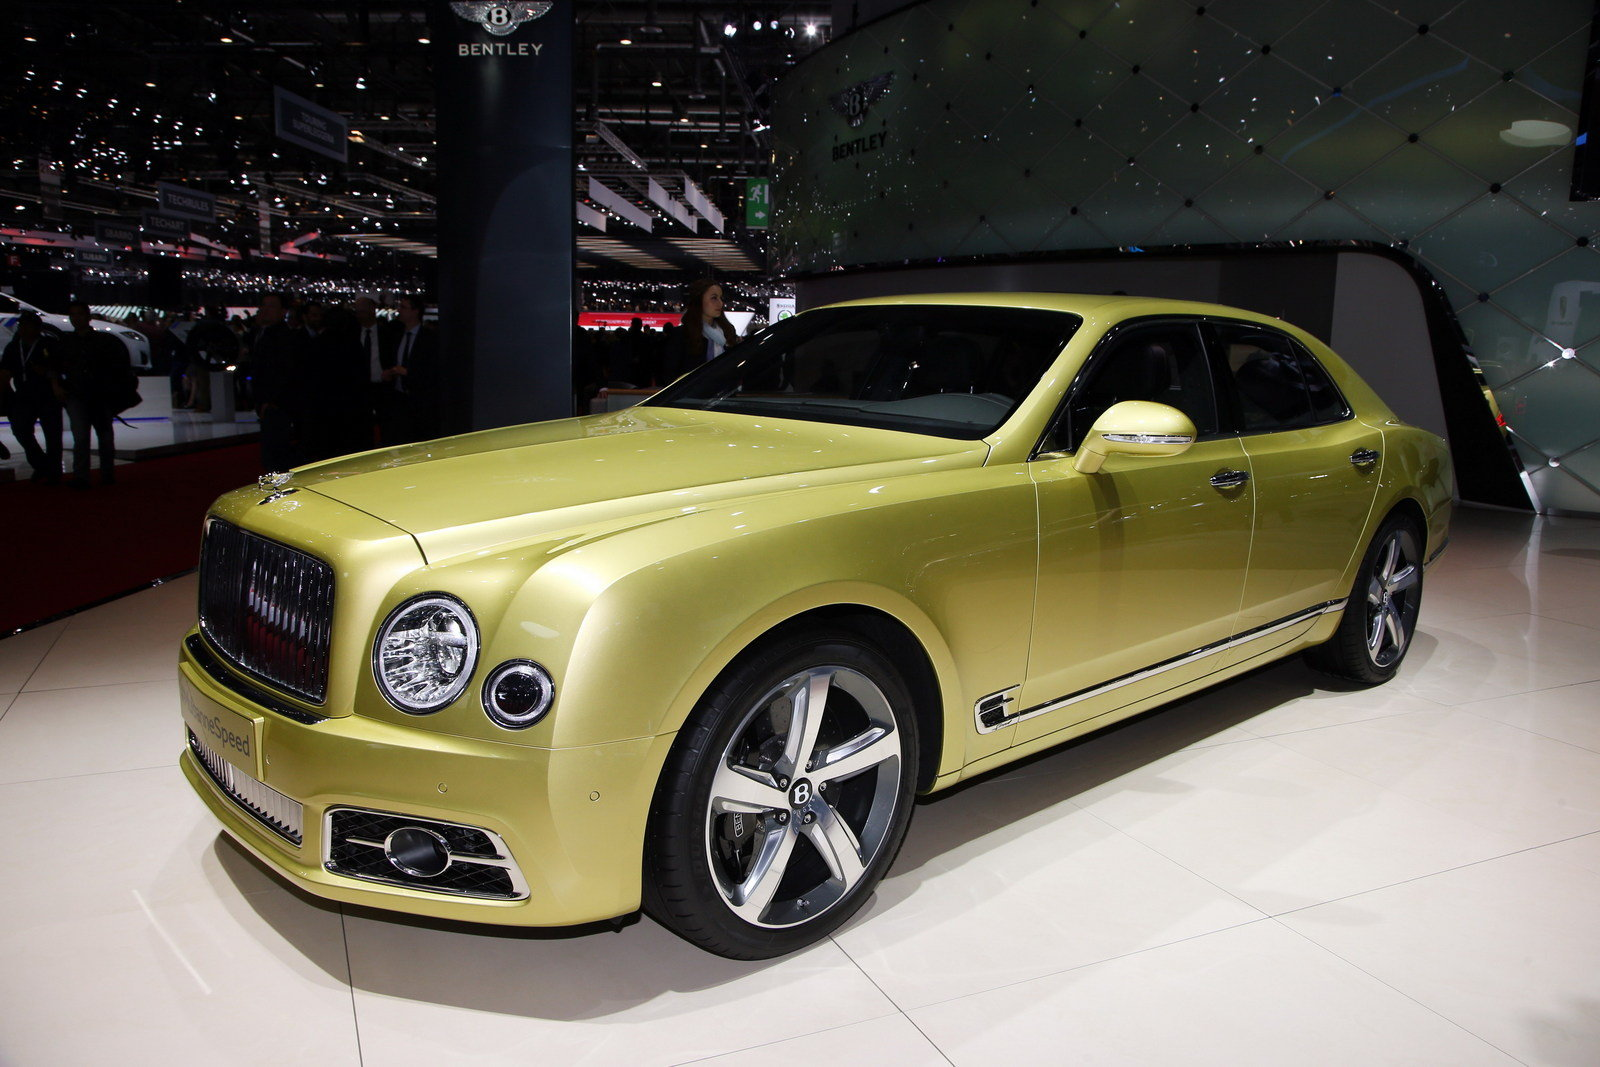 2017 bentley mulsanne speed picture 668343 car review top speed. Black Bedroom Furniture Sets. Home Design Ideas